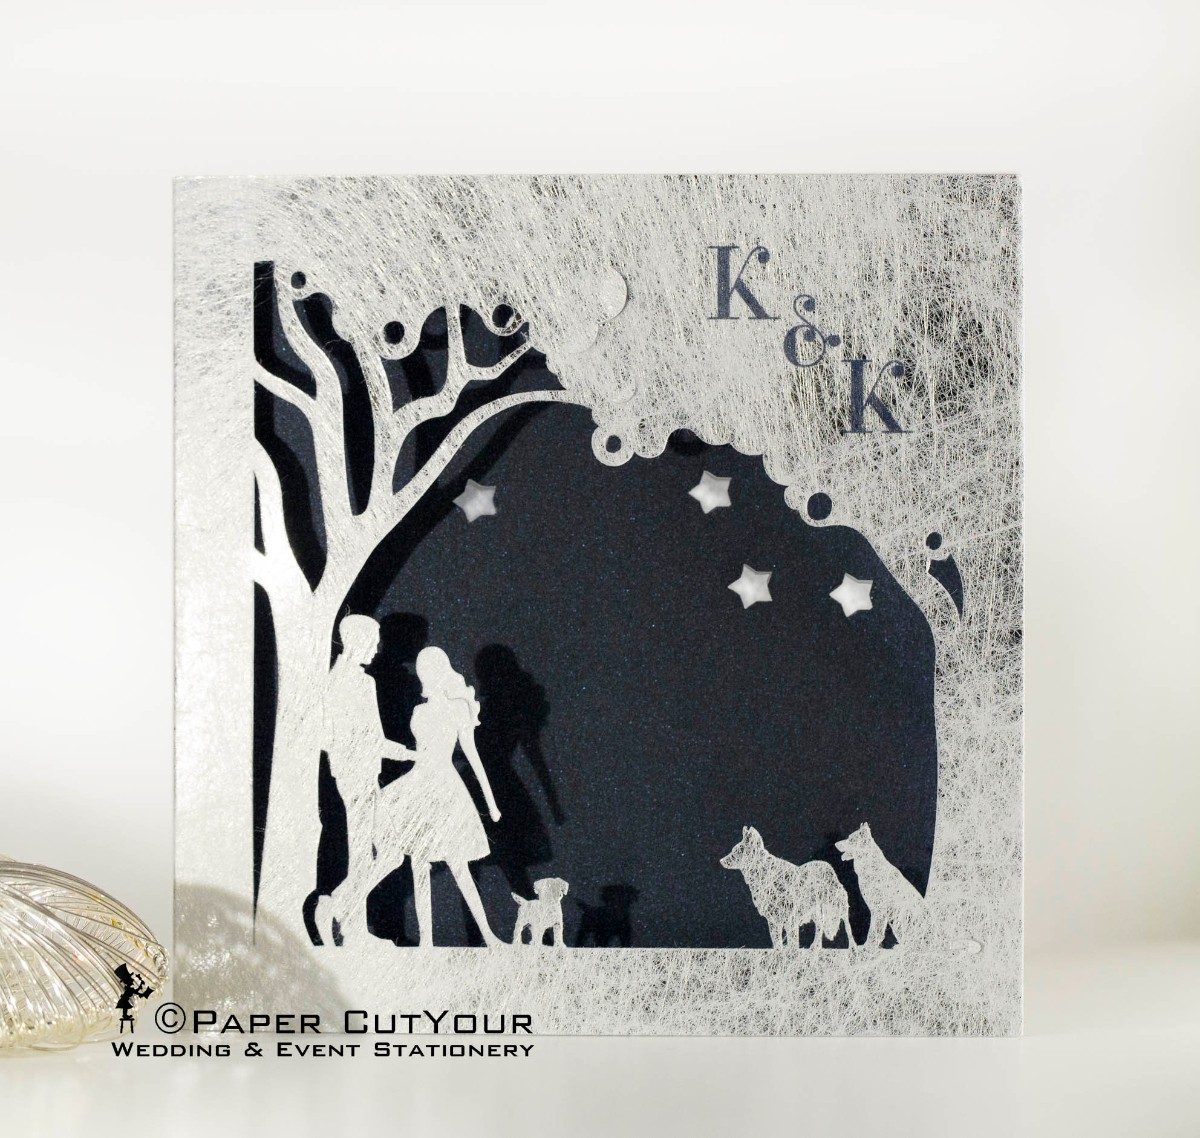 Paper CutYour laser cut wedding invitation, laser cut dogs and couple, twist silver, customised wedding invitations